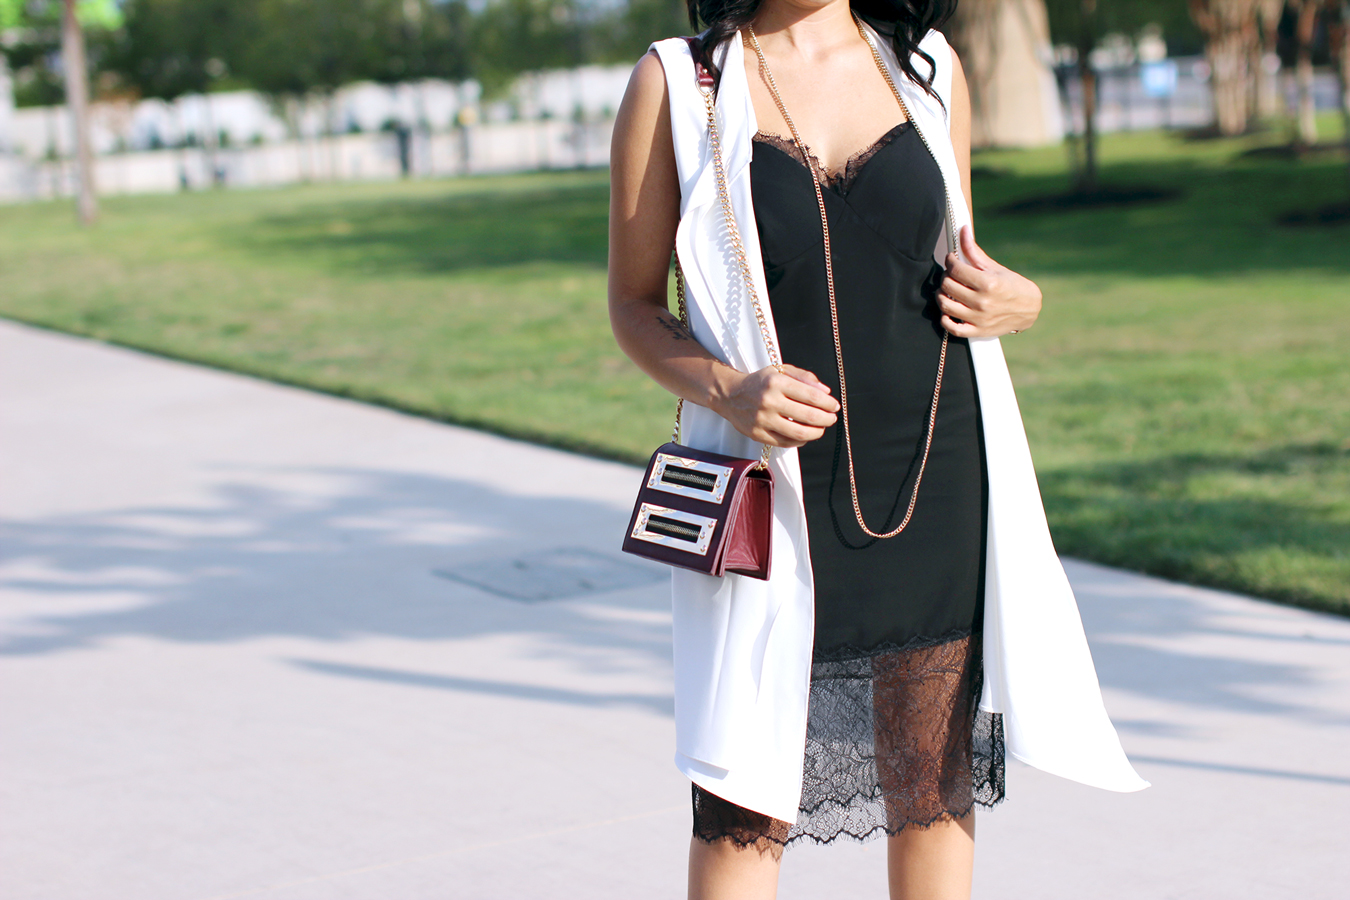 FIXIN-TO-THRILL-SLIP-DRESS-LONGLINE-VEST-BLACK-WHITE-FALL-ATX-AUSTIN-STYLE-BLOG-SHIRTS-COLORS-TRENDS-FW15-TRENDY-CHIC-GLAM-FASHION-TEXAS-2